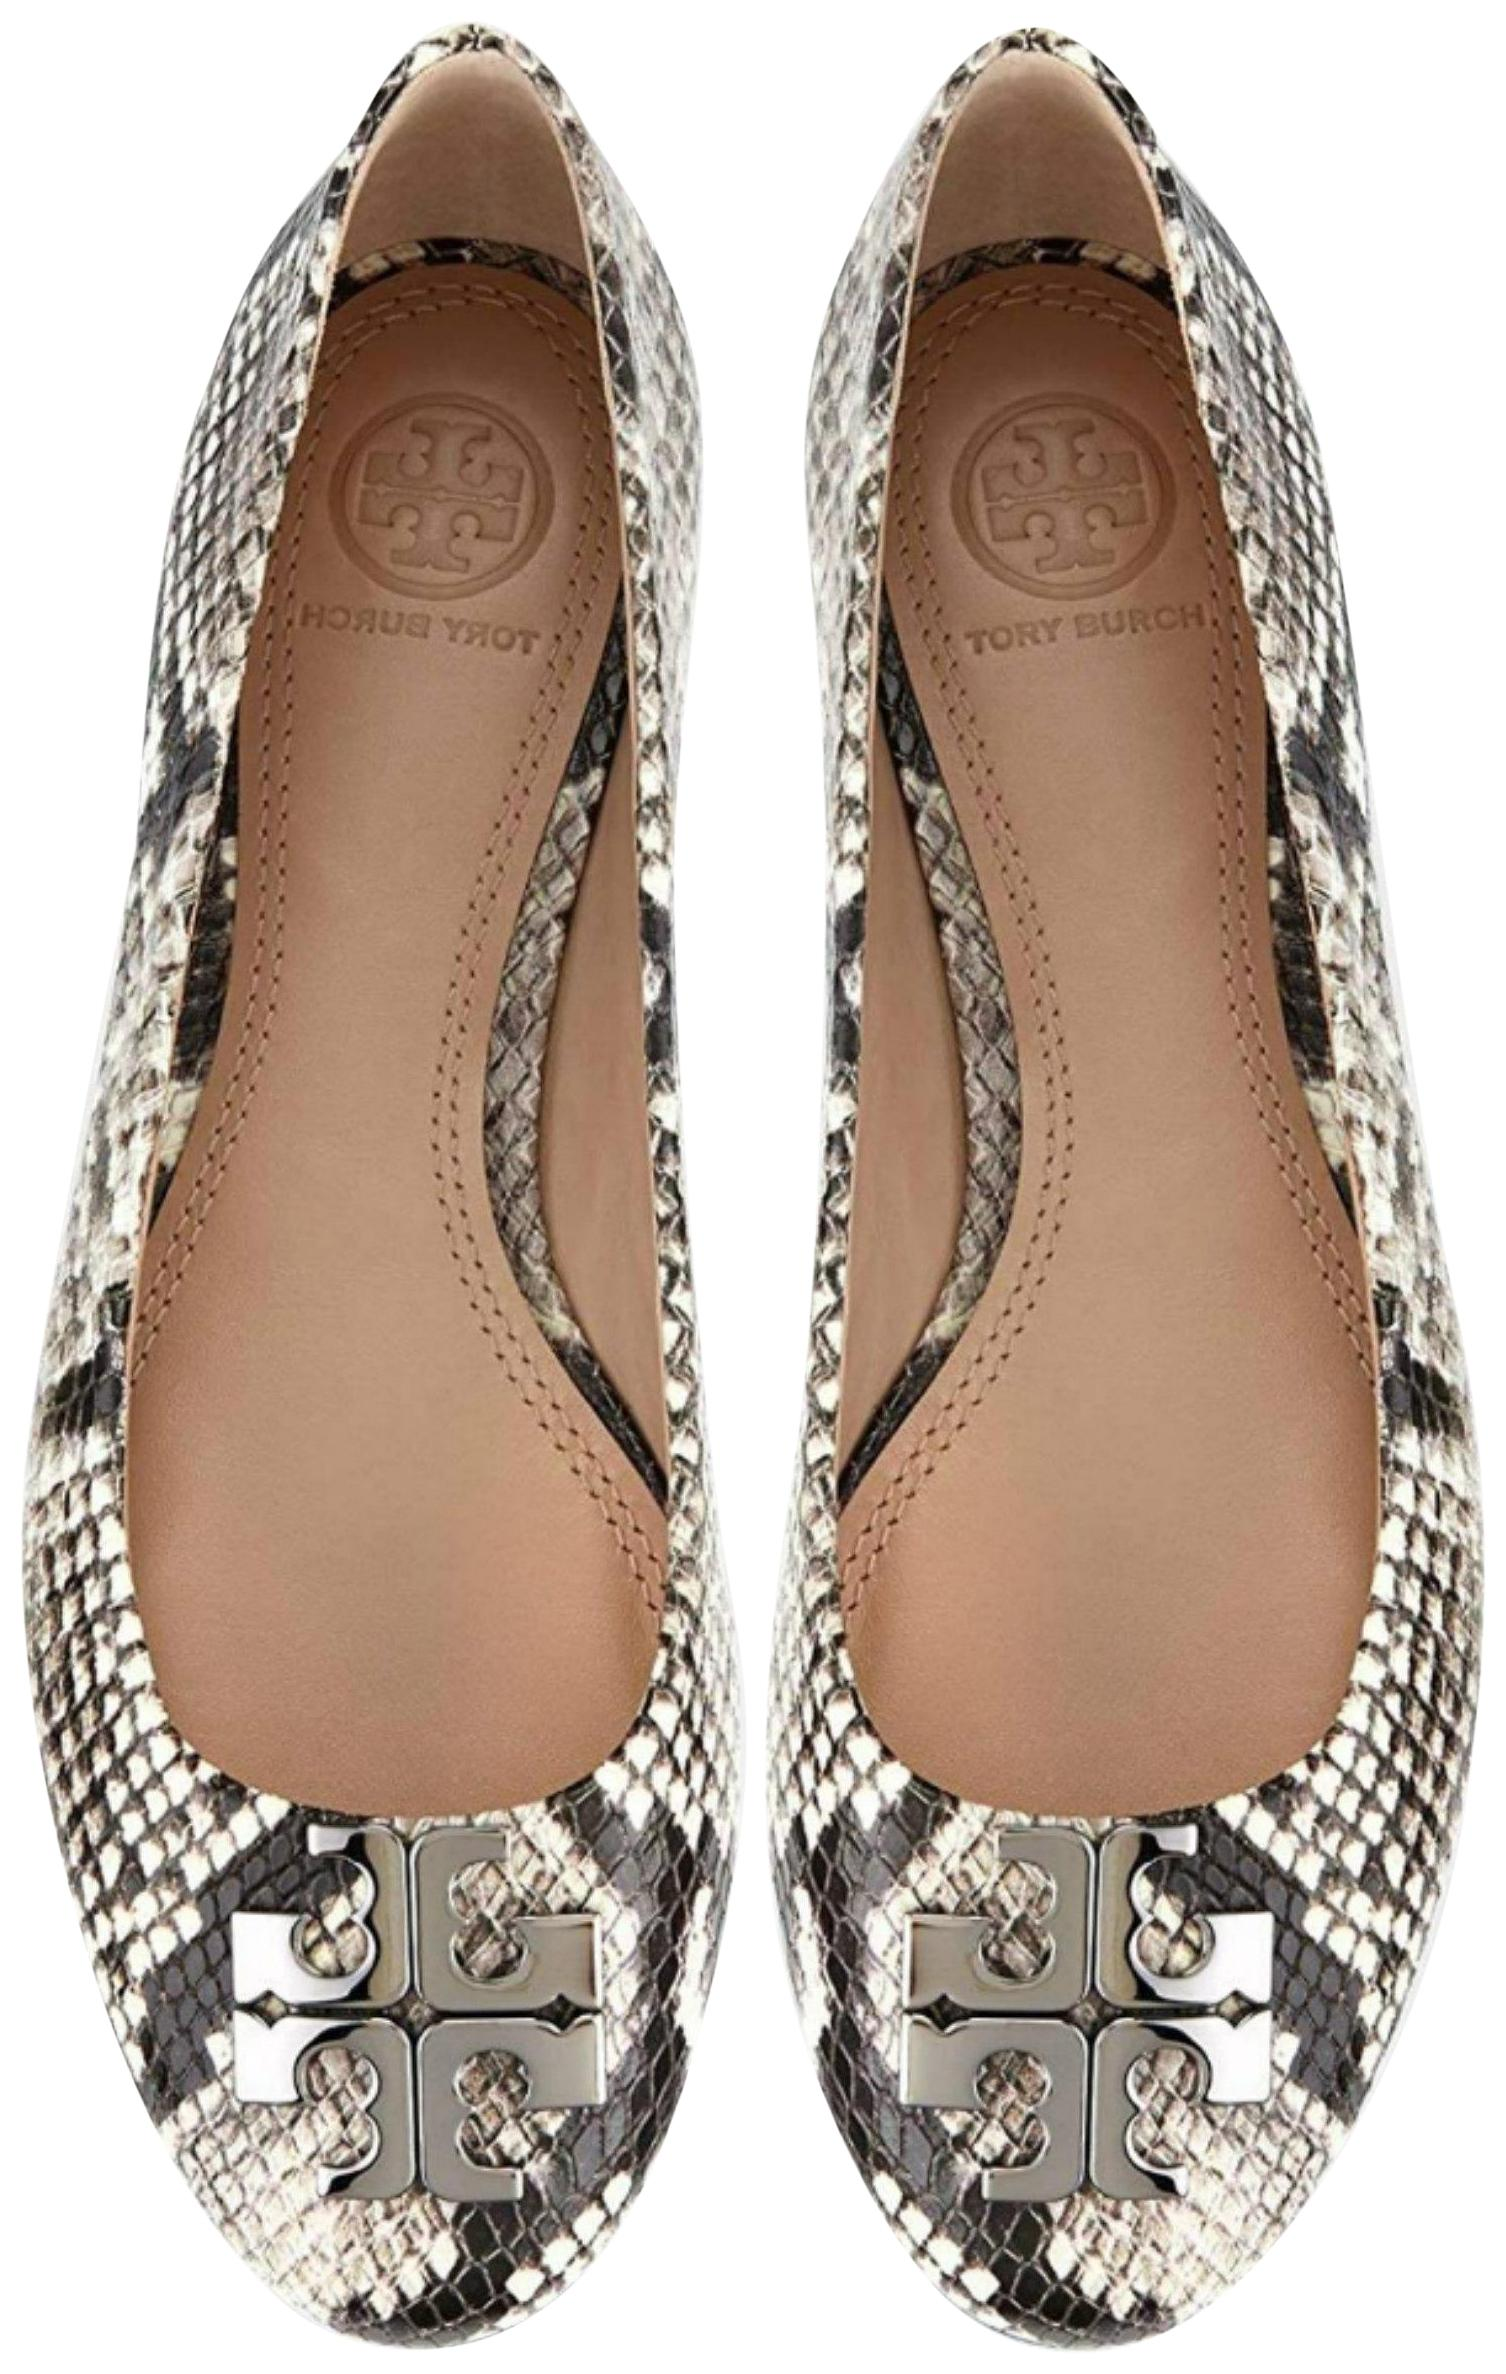 9ee244020df9bd ... 50% off tory burch snake print black white flats d75a5 75d39